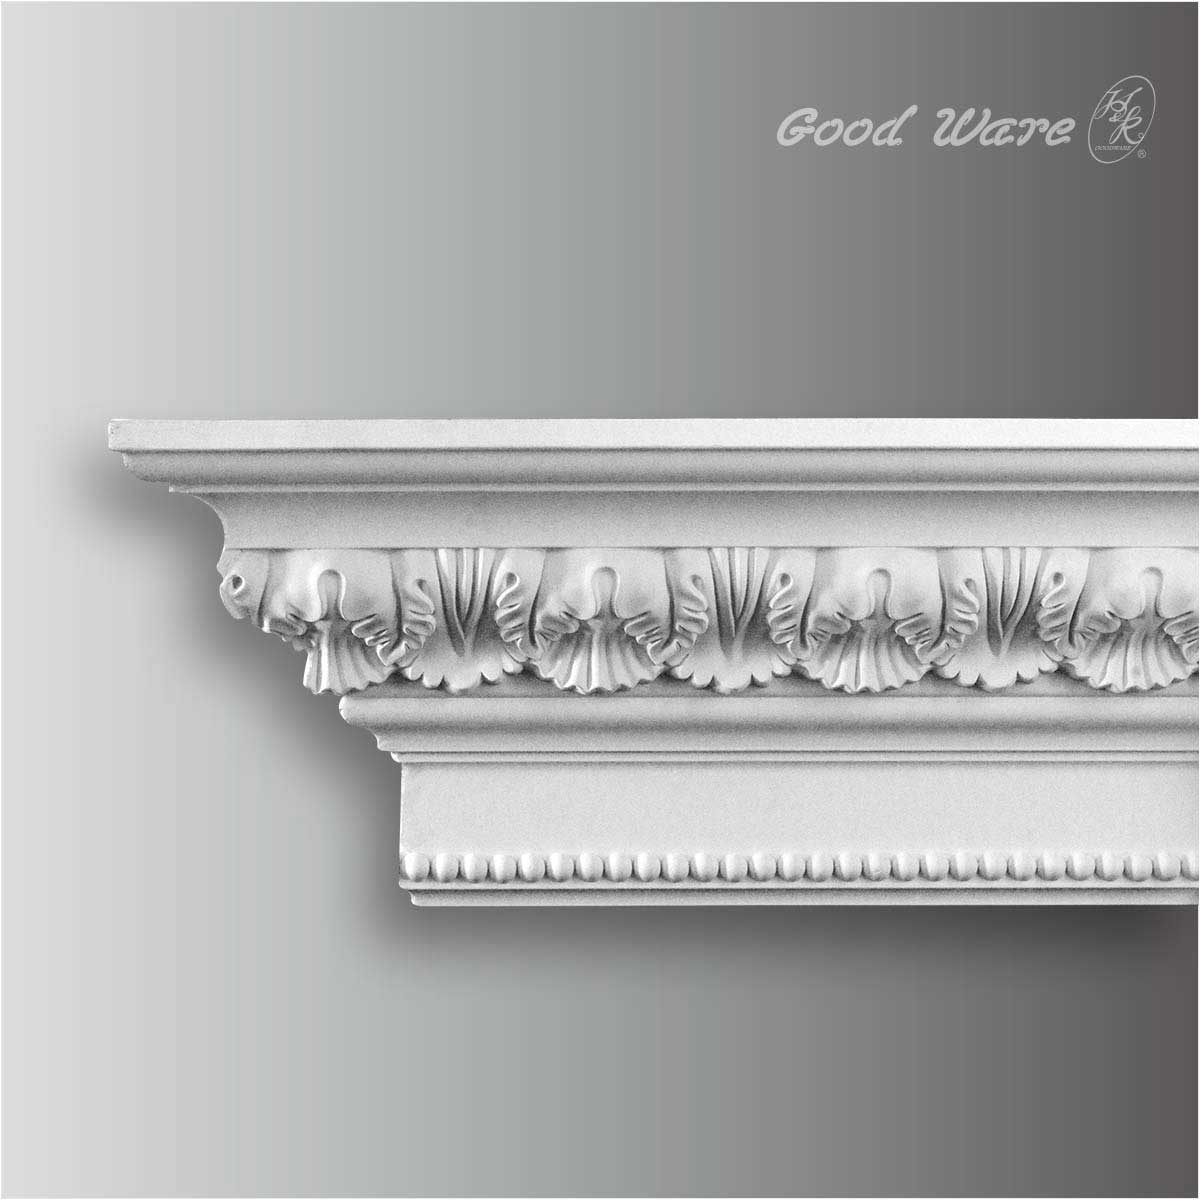 Victorian kitchen cornice mouldings